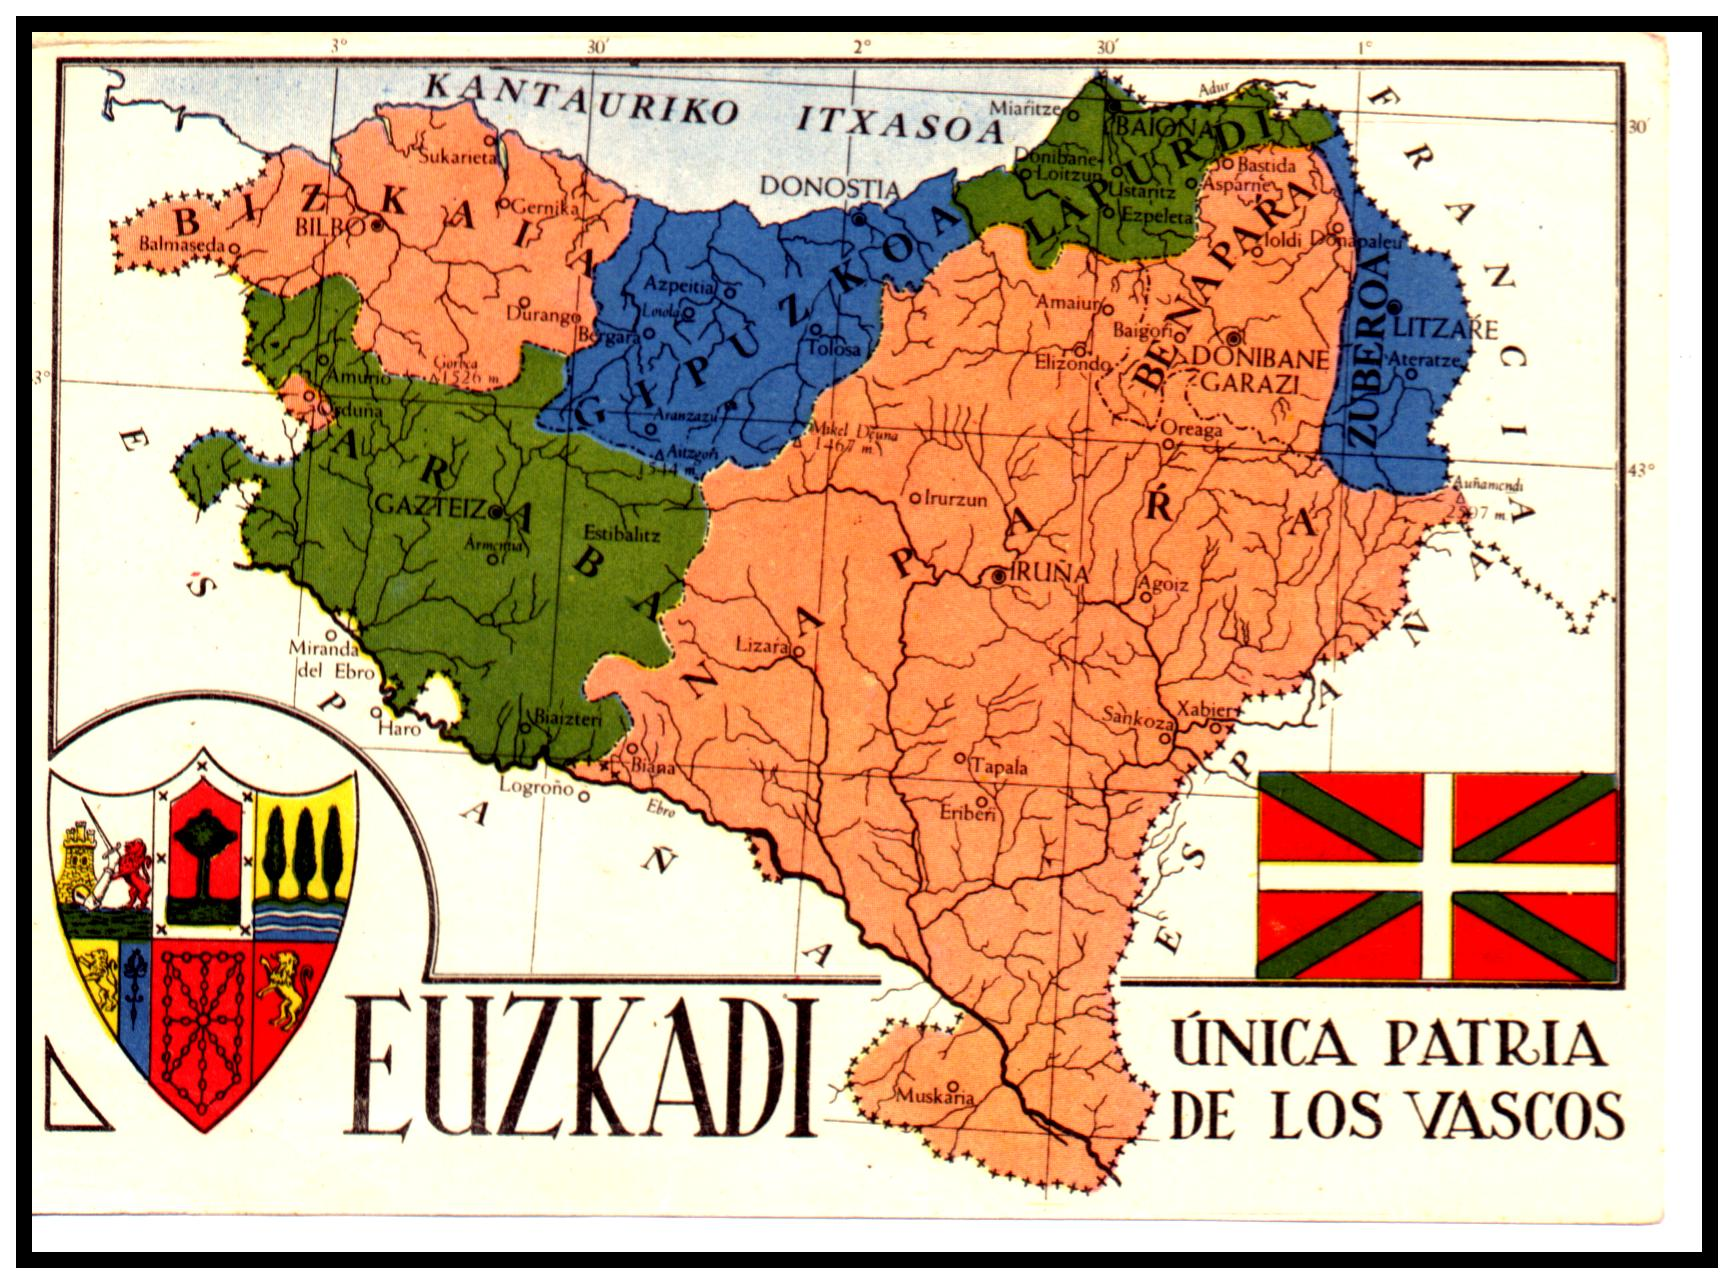 Map of the Basque provinces